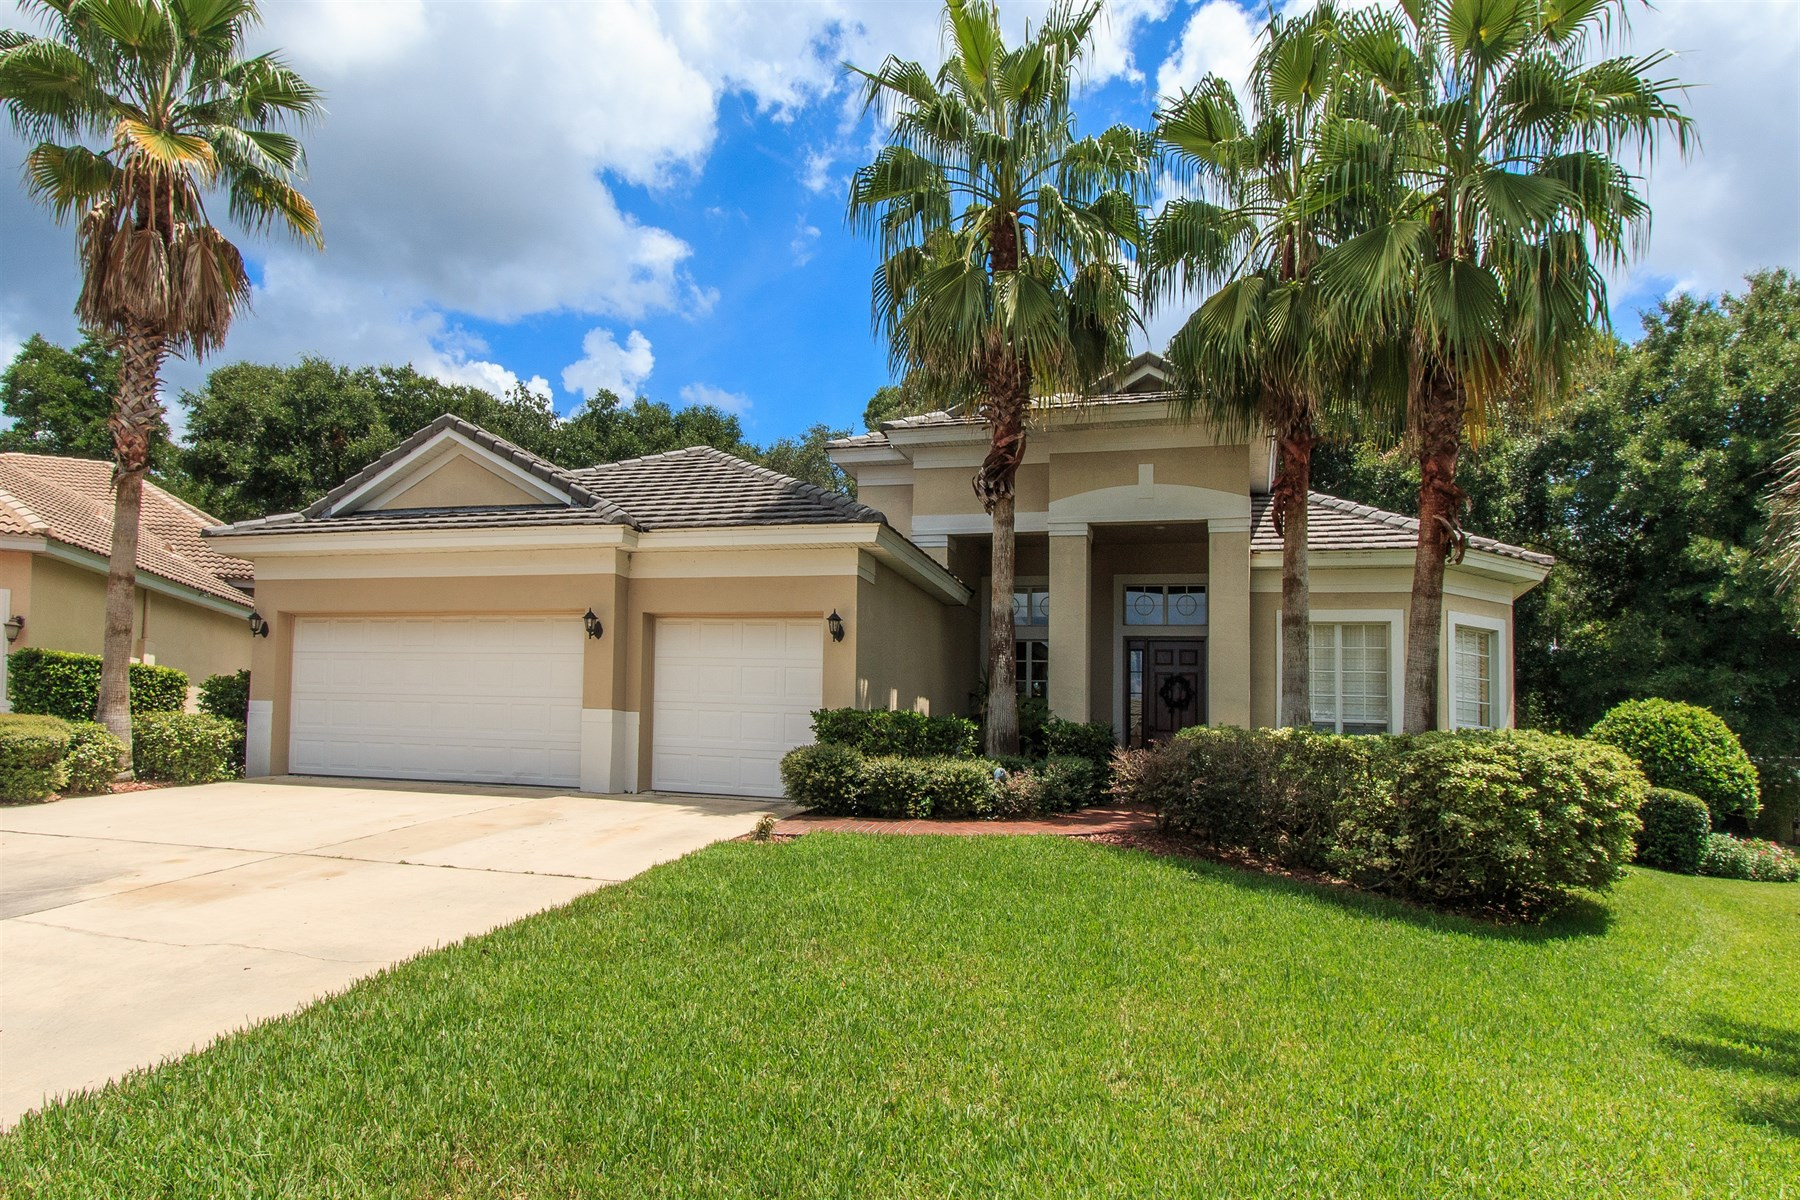 Single Family Home for Sale at ORLANDO - LAKE MARY 1227 Gatwick Loop Lake Mary, Florida, 32746 United States